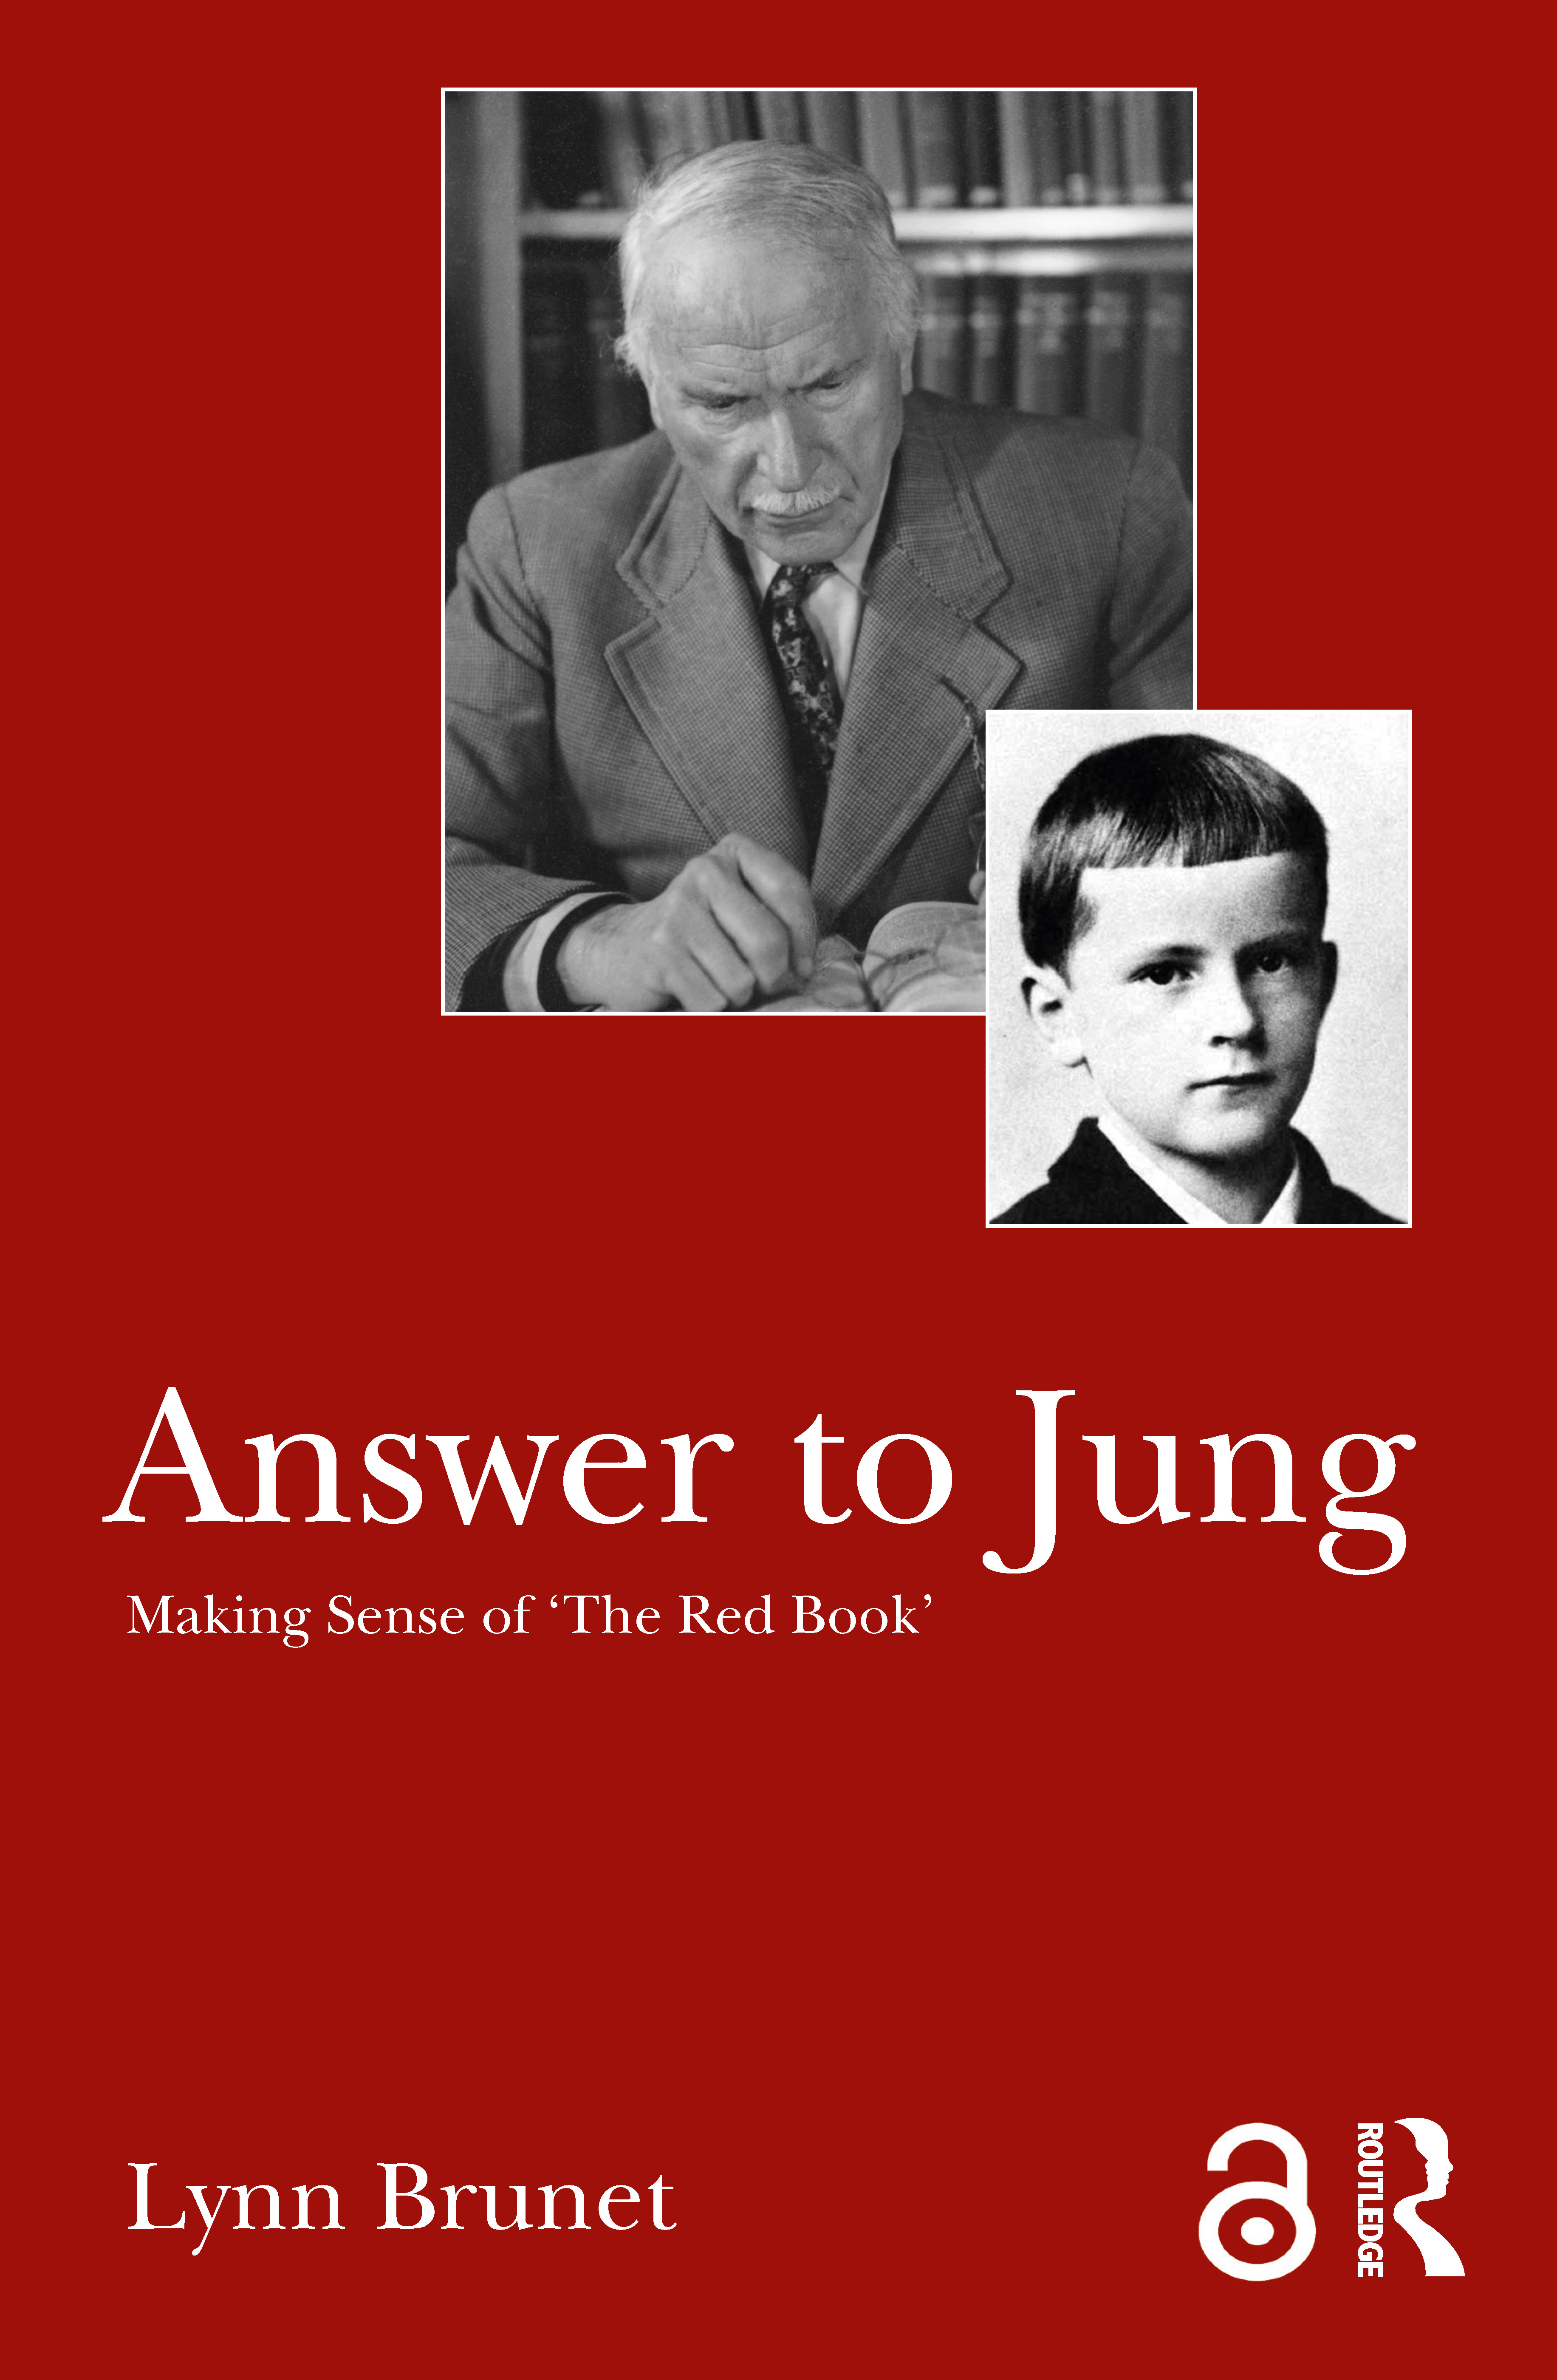 Answer to Jung: Making Sense of 'The Red Book' book cover